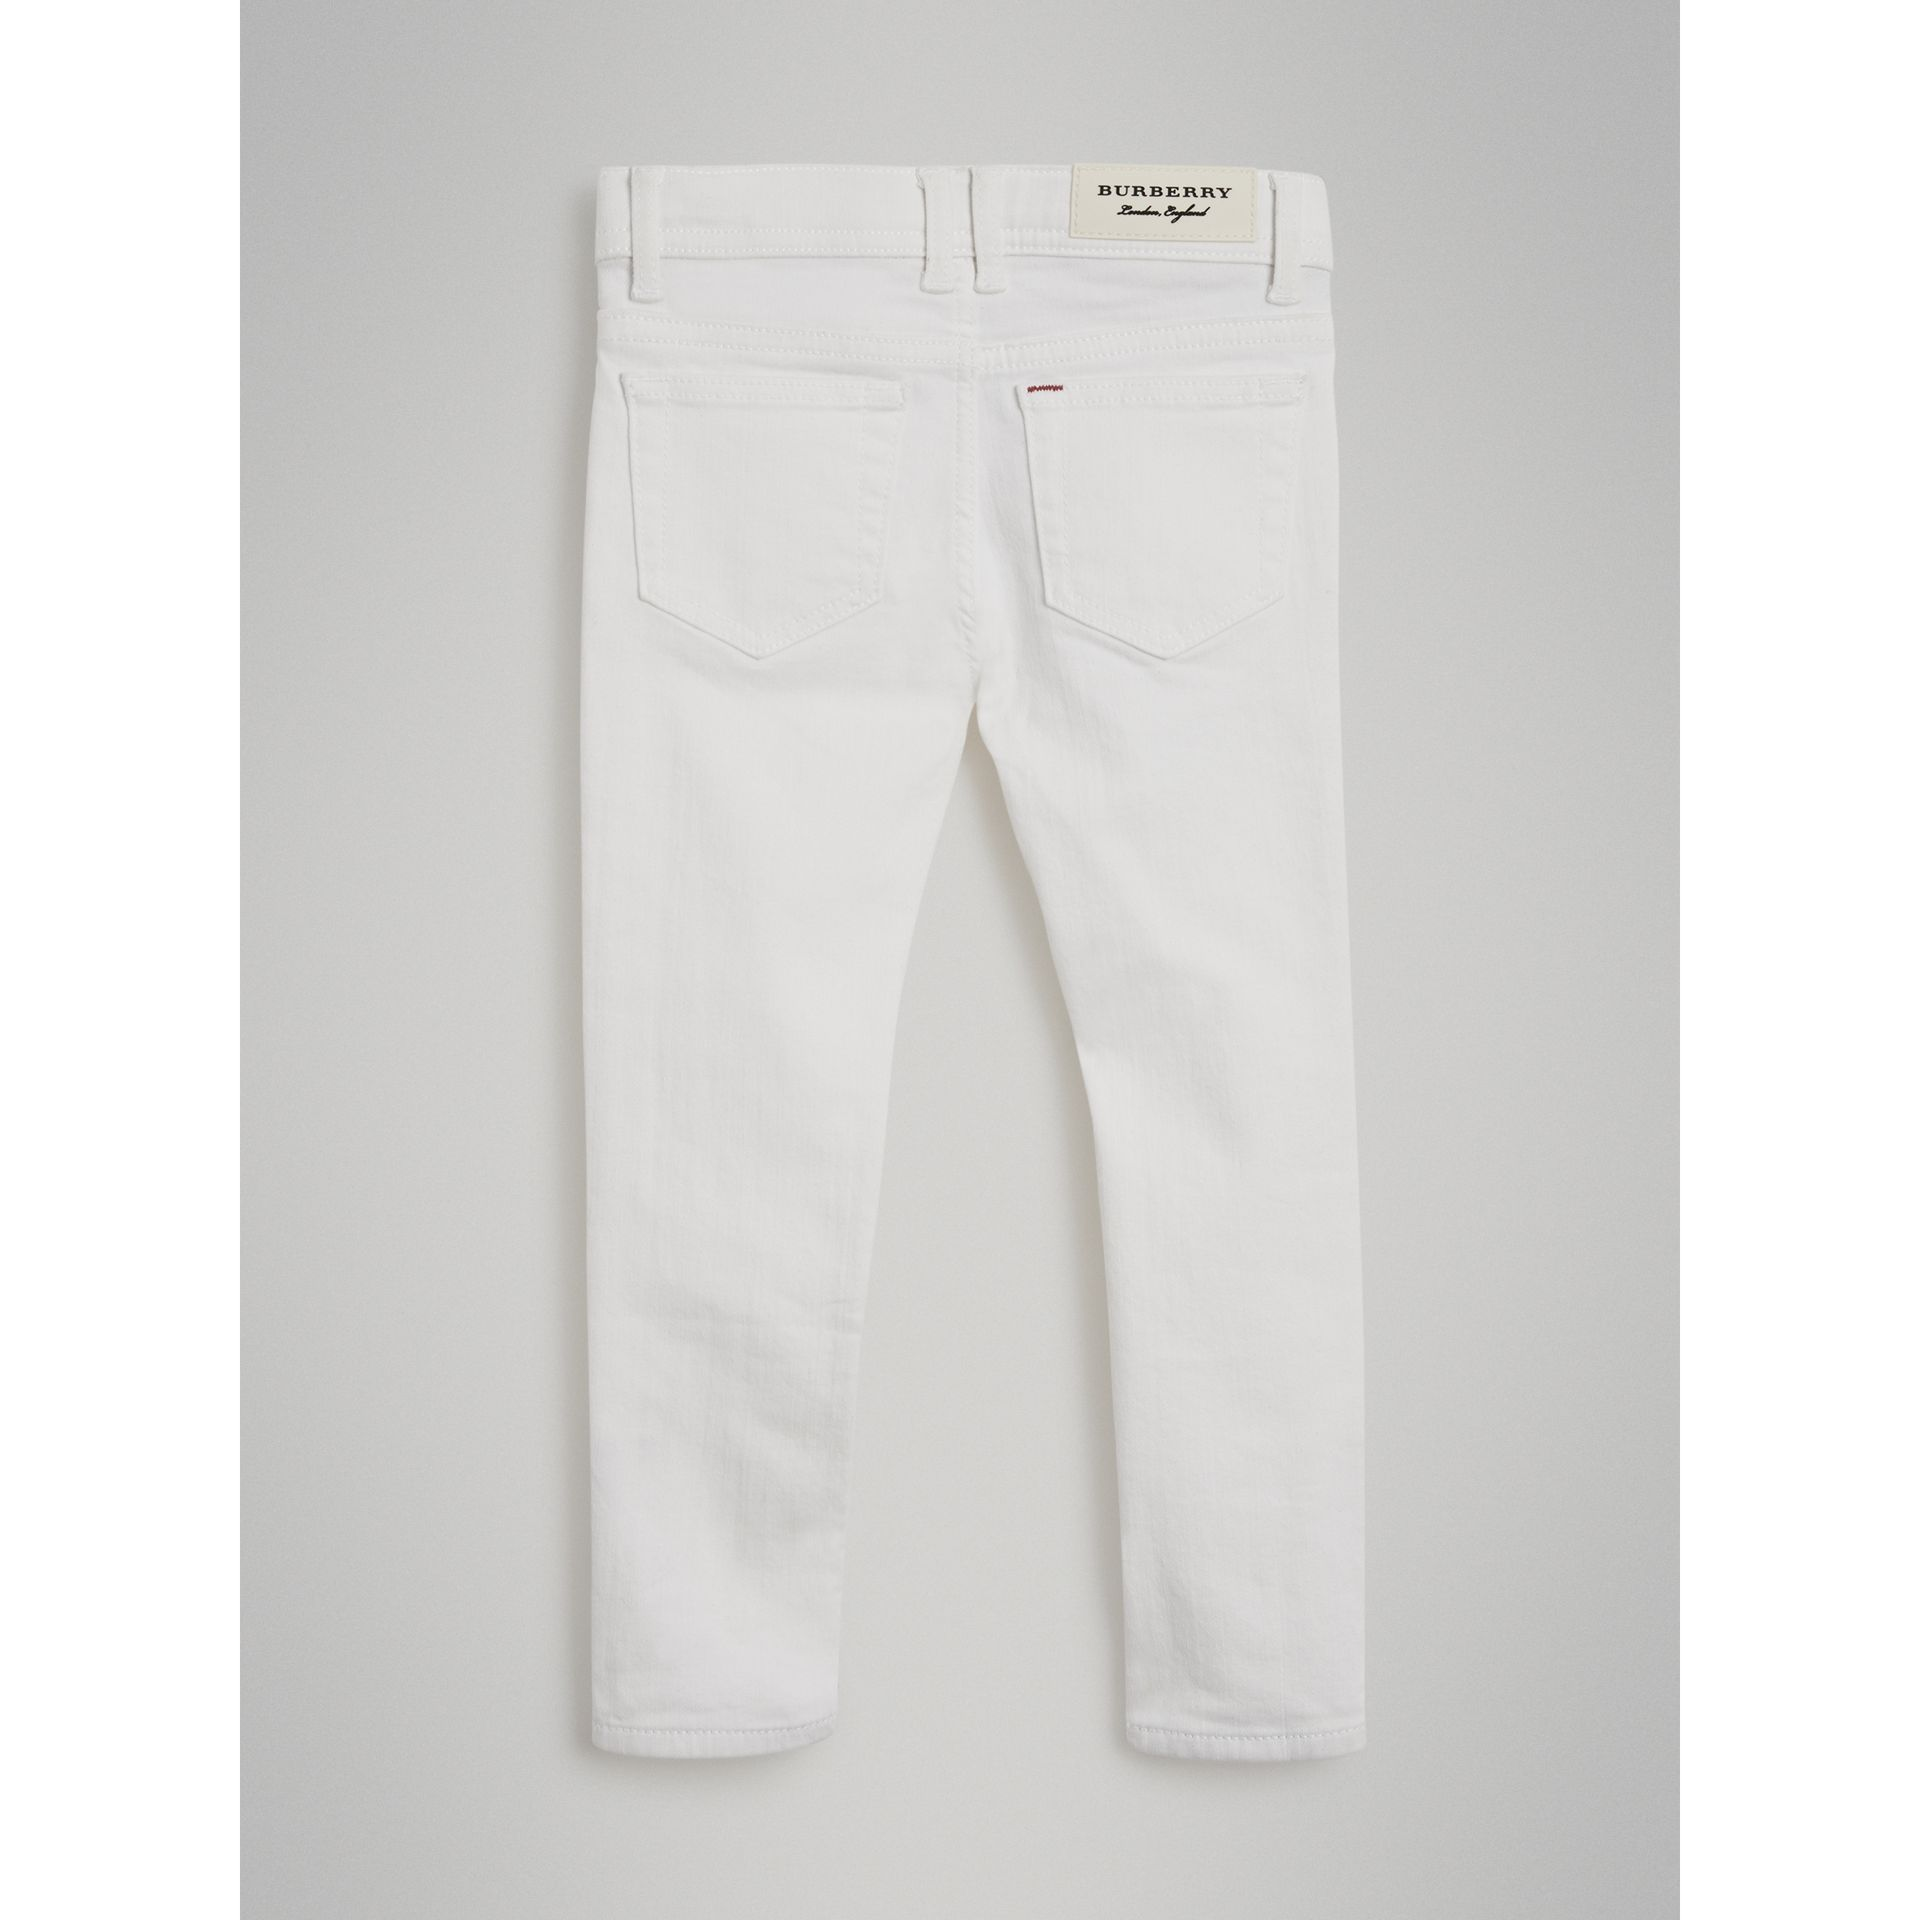 Skinny Fit Stretch Jeans in White | Burberry - gallery image 3